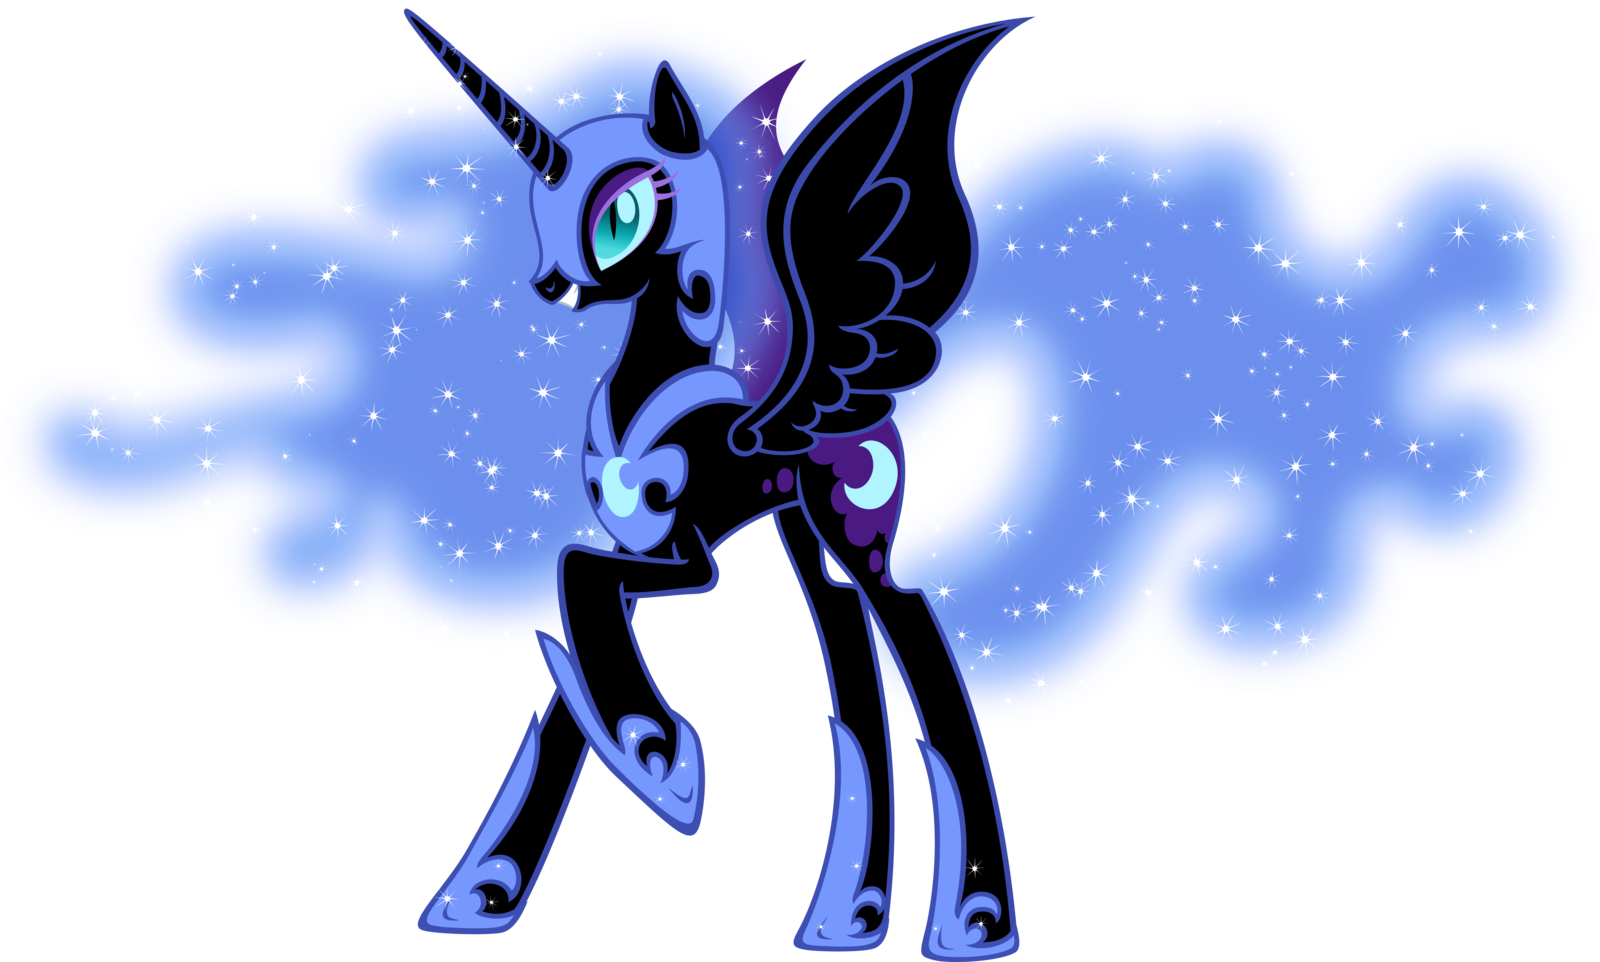 1600x962 - Nightmare Moon 1